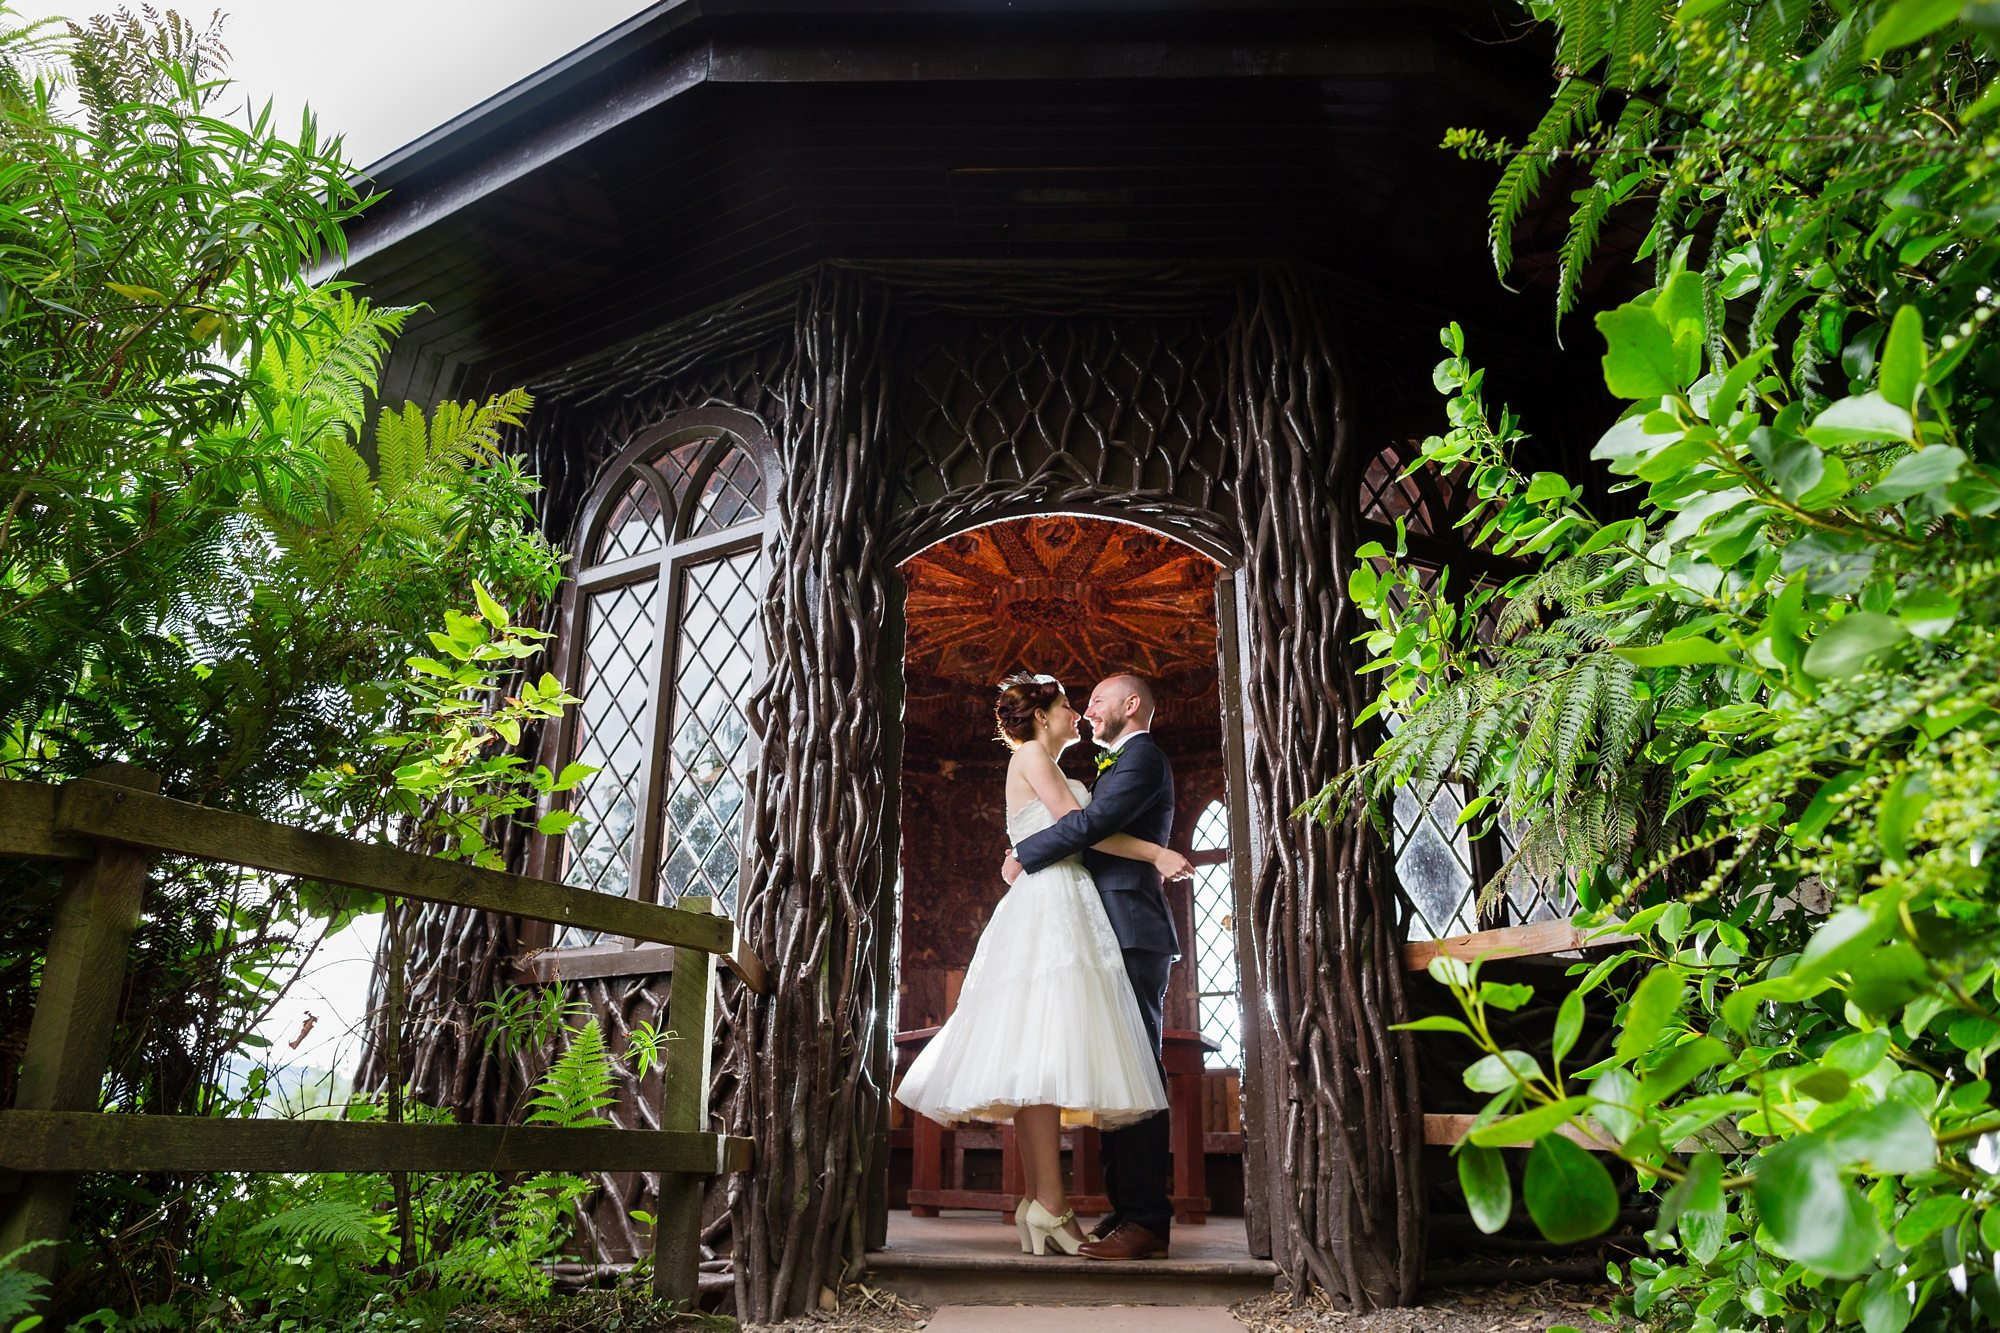 redhead bride kissing groom and hugging under wooden archway door